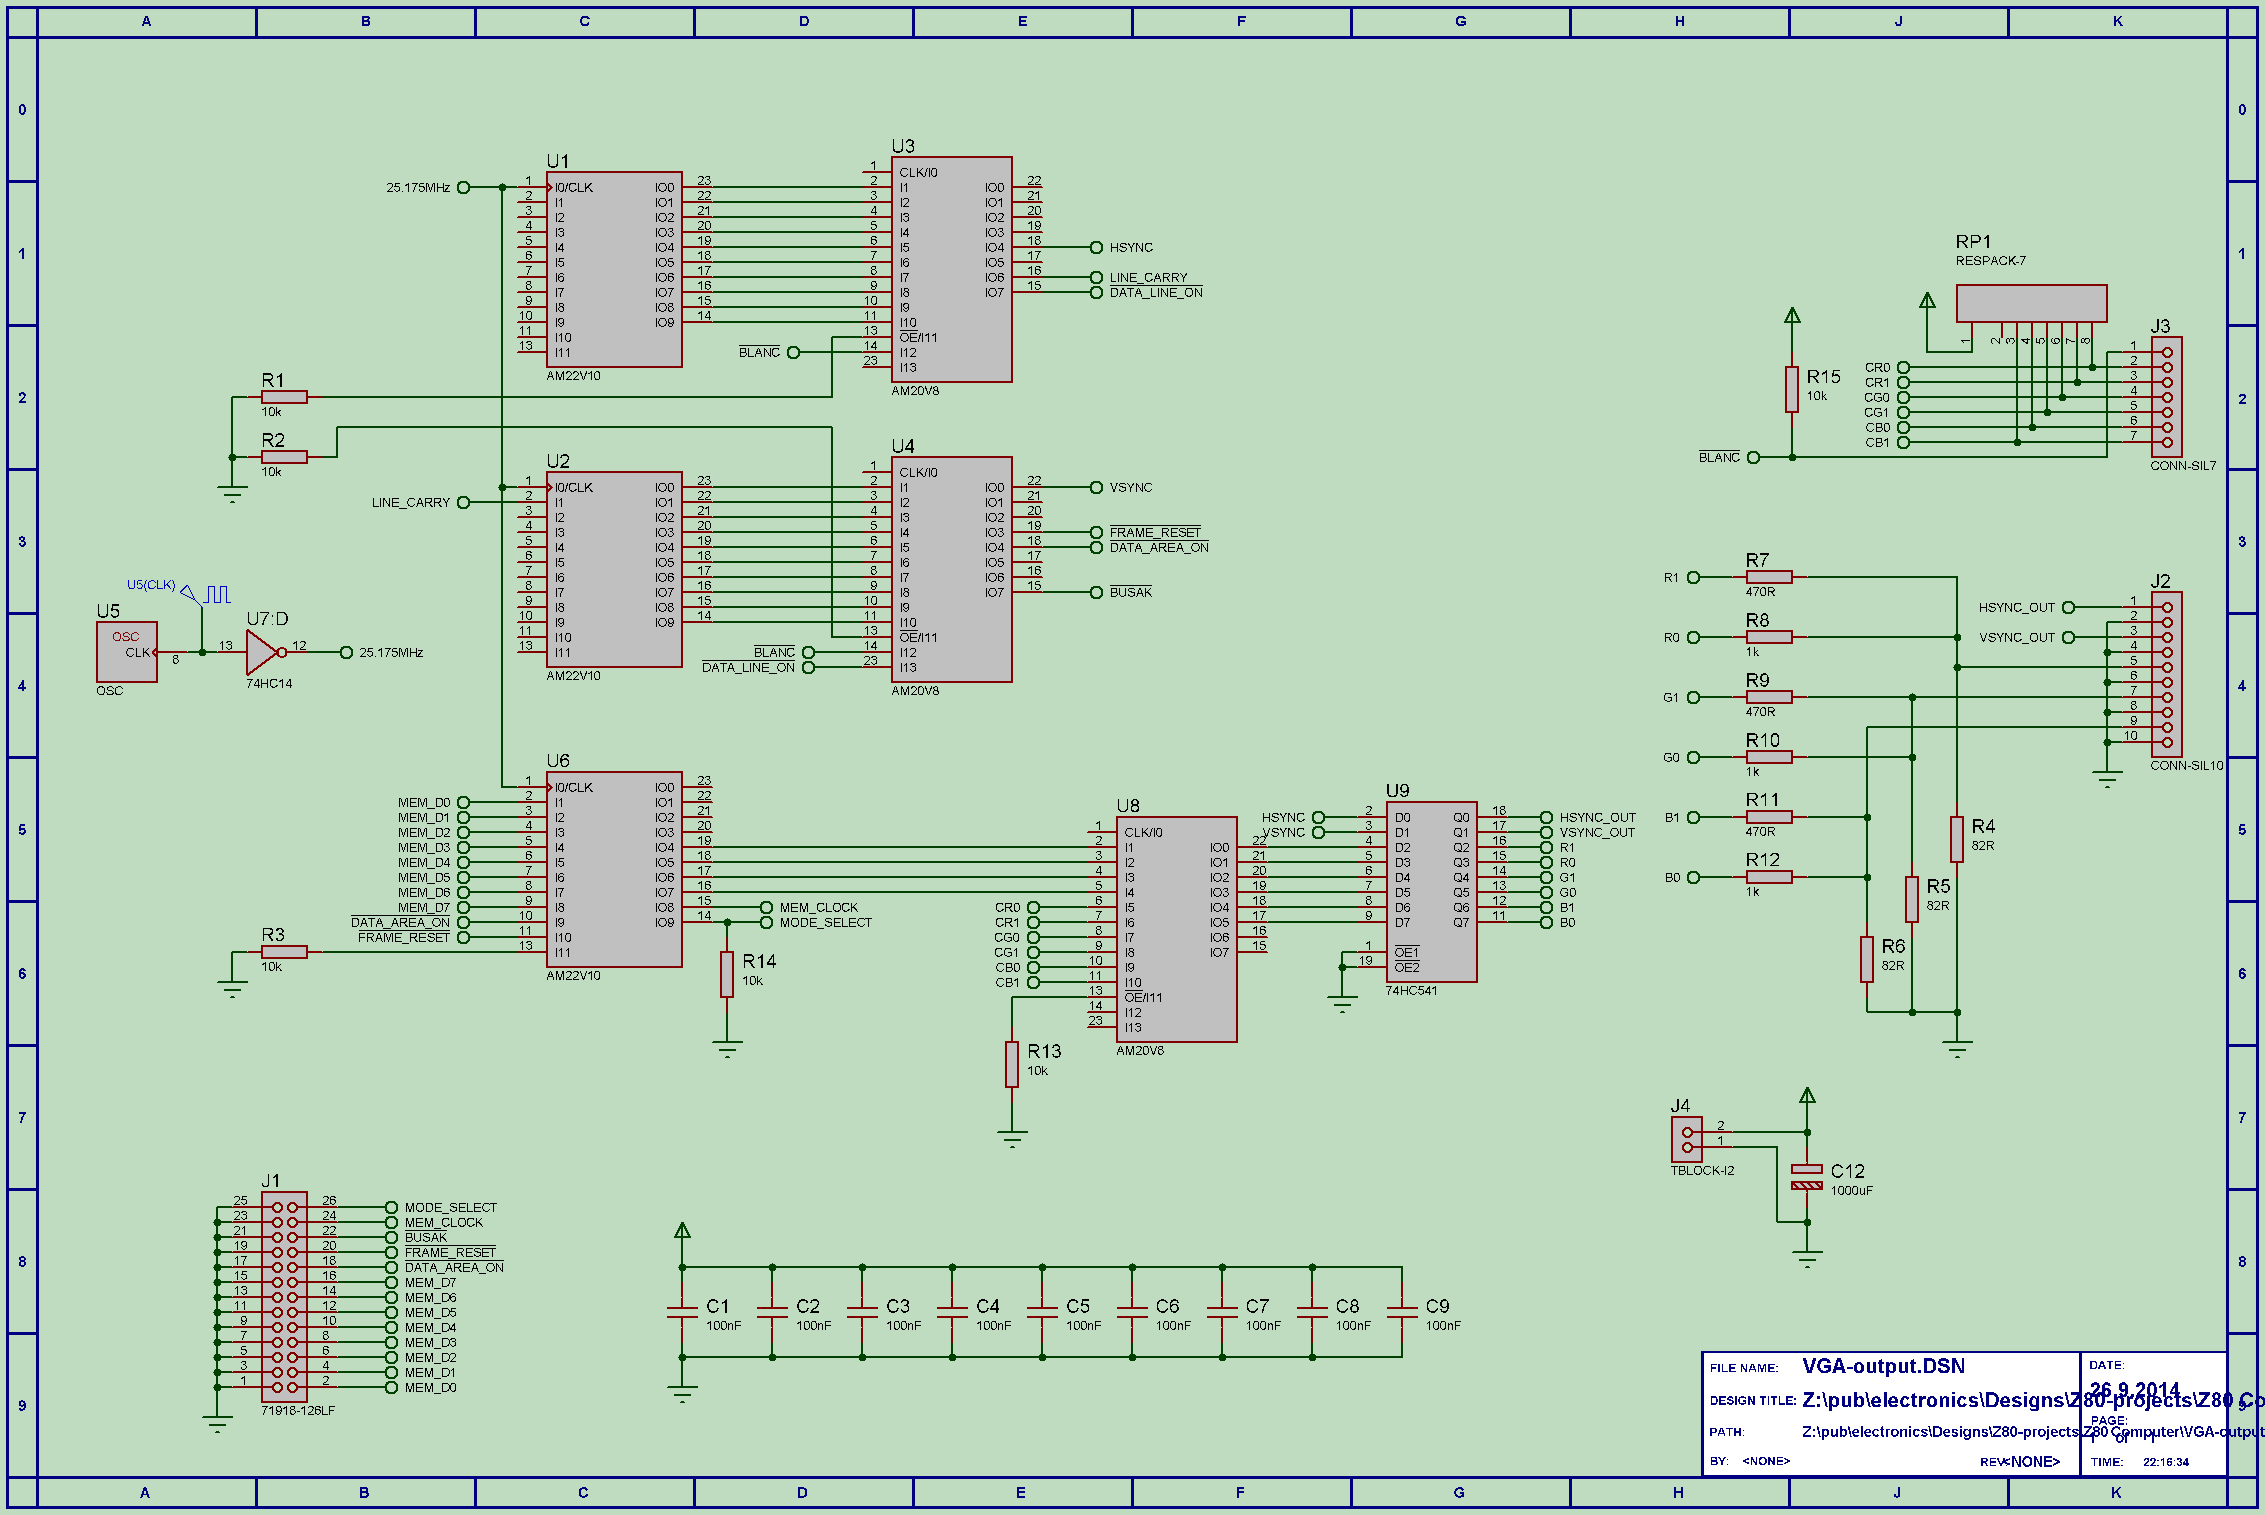 Vga Controller Schematic New Era Of Wiring Diagram Vhdl Block Free Download Zc160 Adapter Tl Dr Rh Tldr Fi Cable